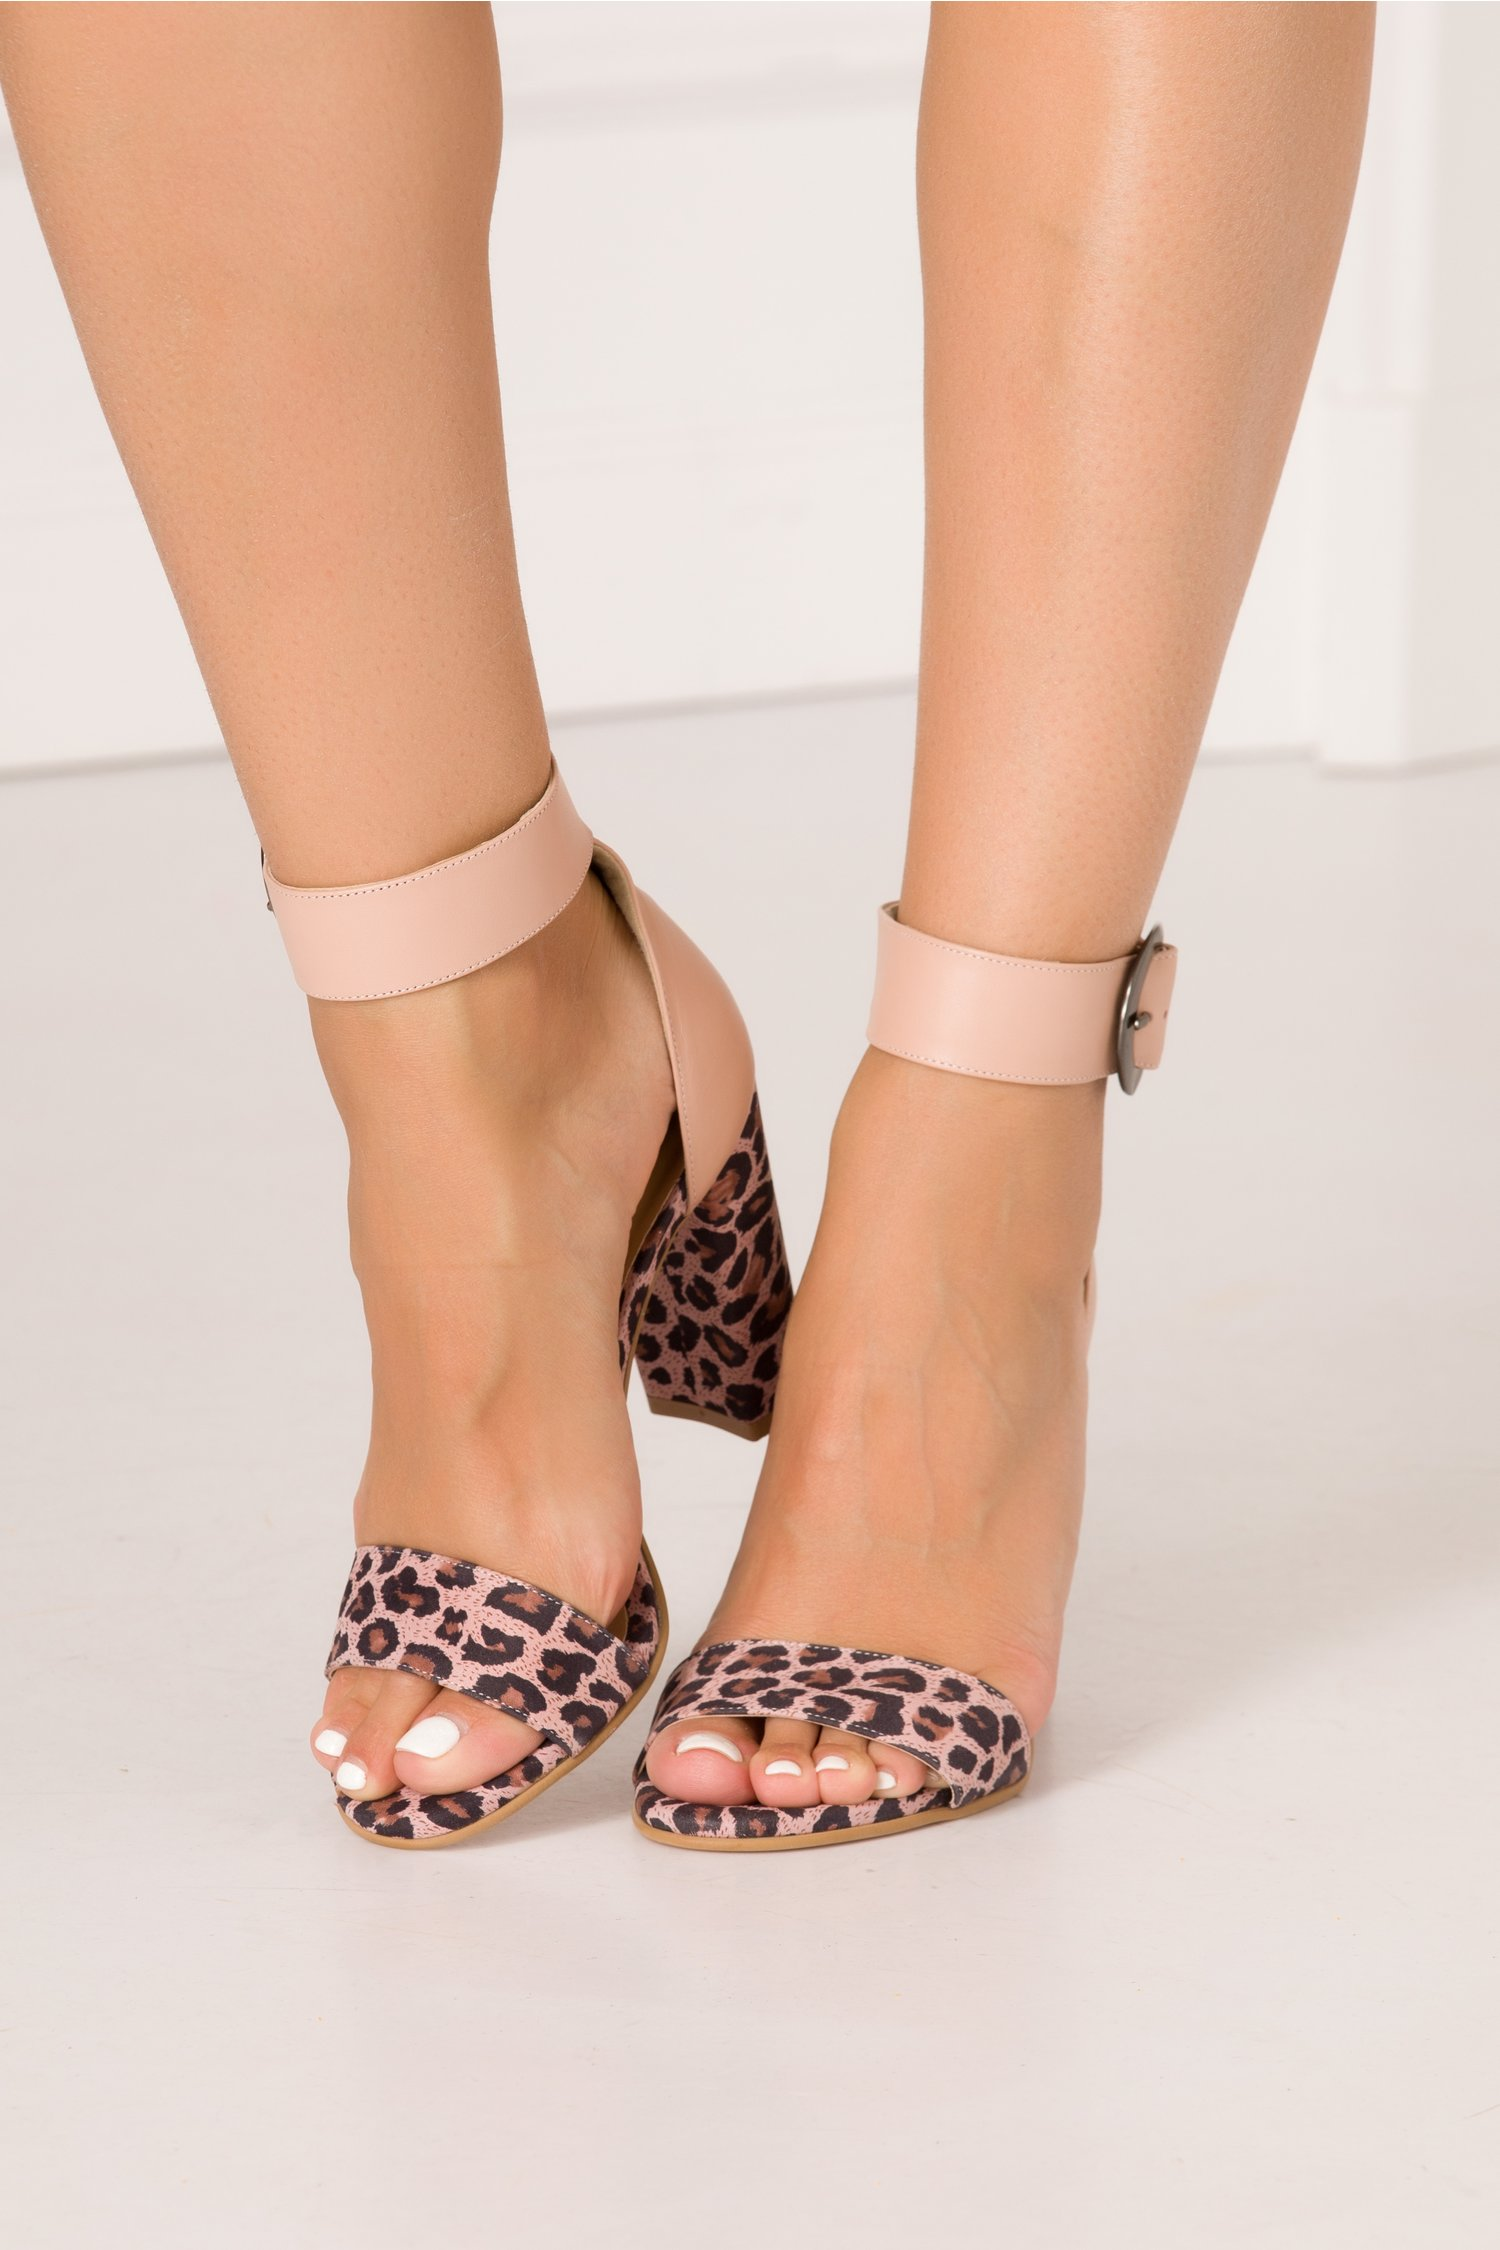 Sandale nude rose cu animal print